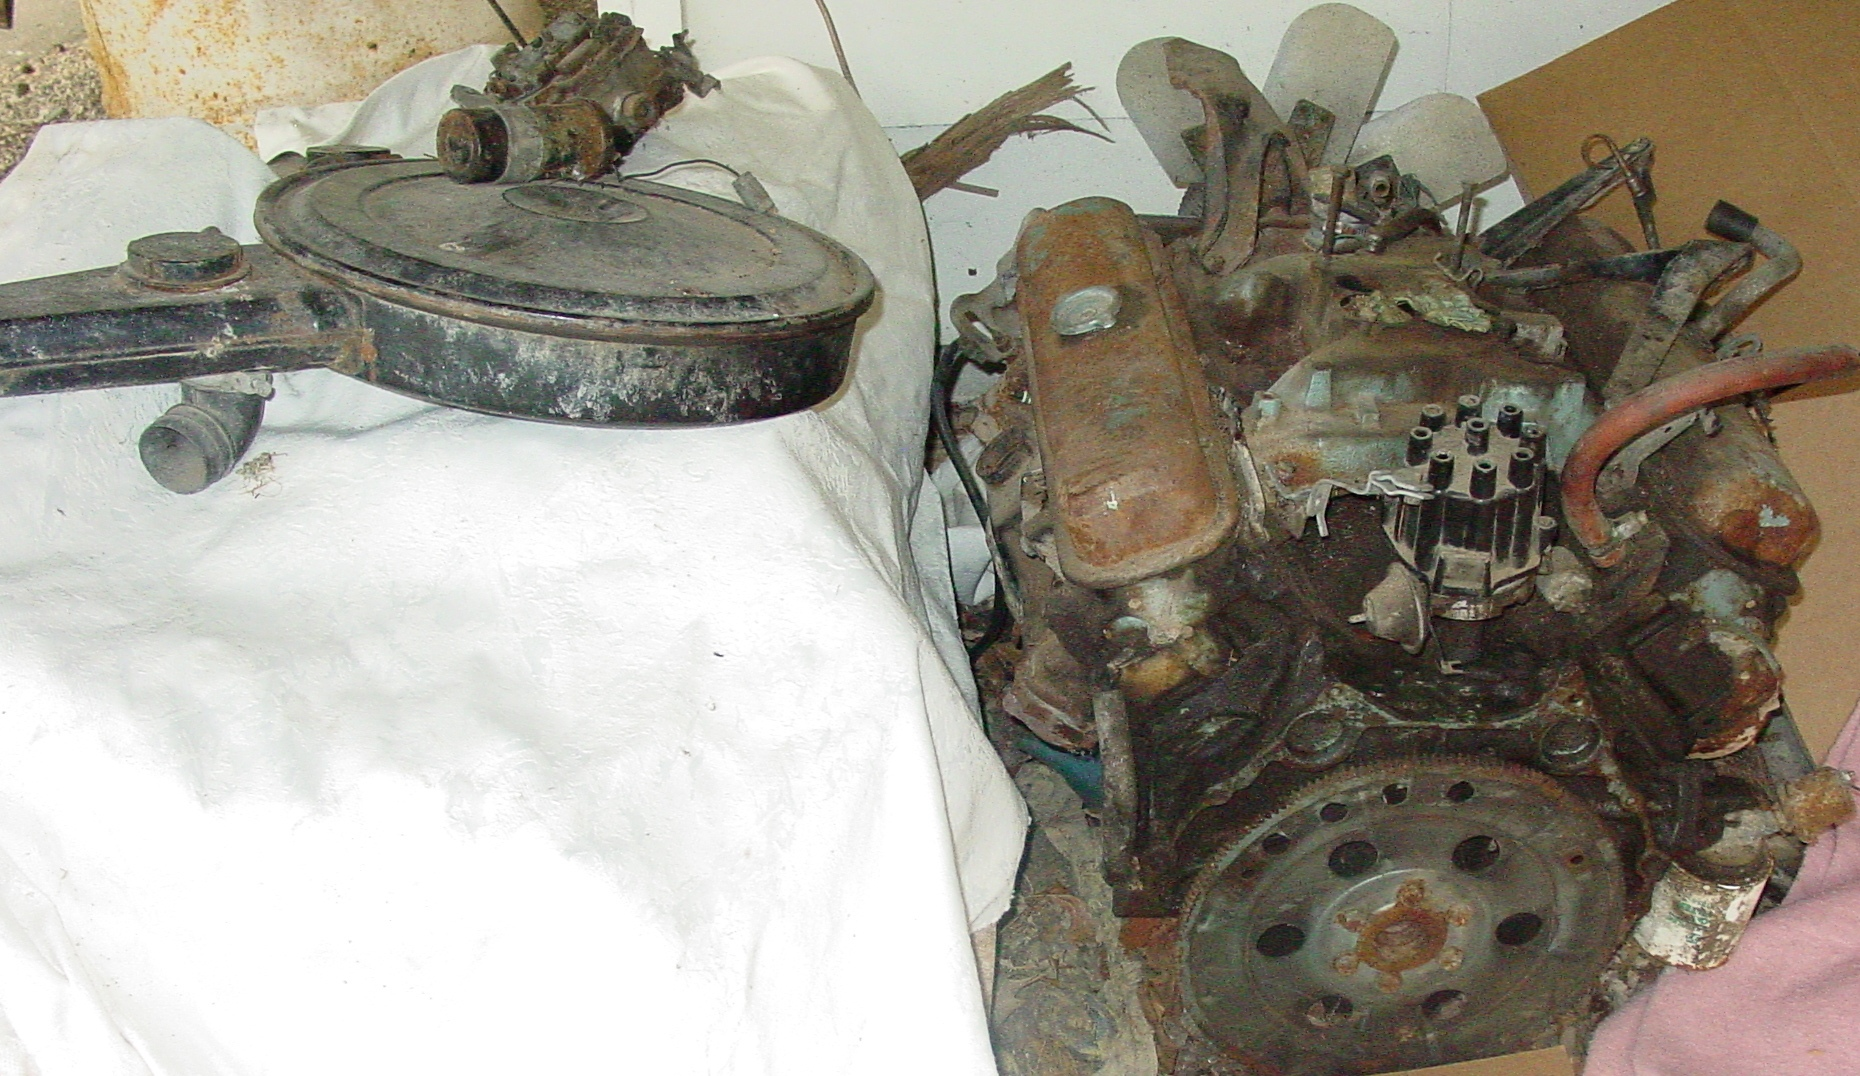 For Sale - 1970 455 HO engine-2-back.jpg